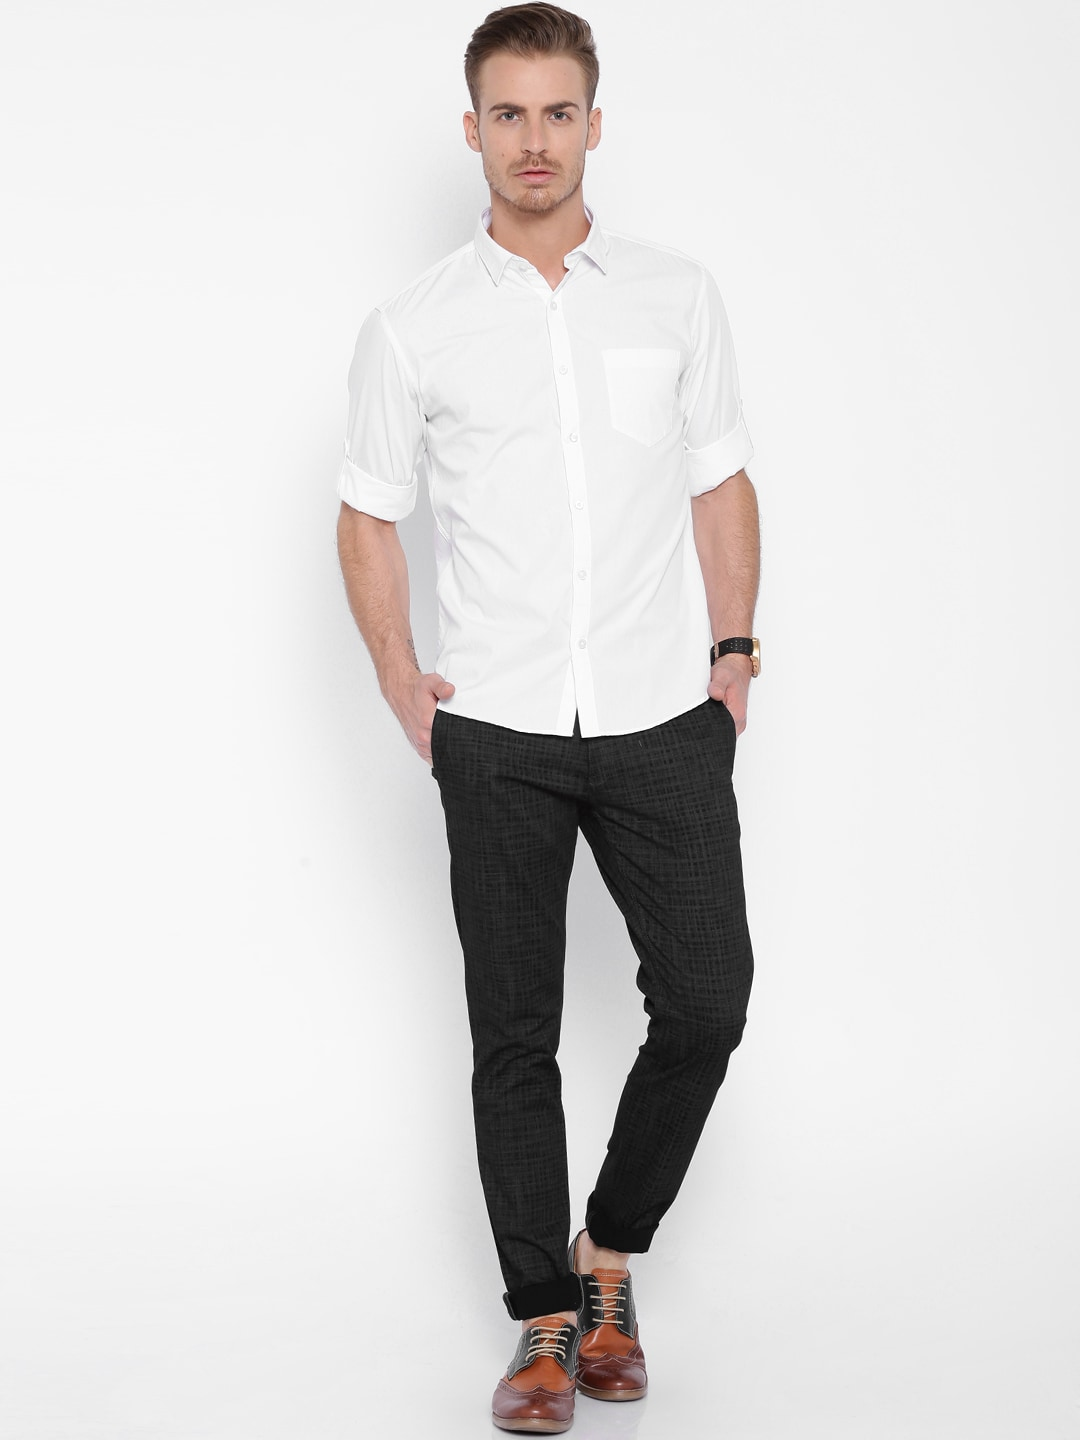 Awe Inspiring Shirts For Men Buy Casual Shirts For Men Online In India Hairstyles For Women Draintrainus